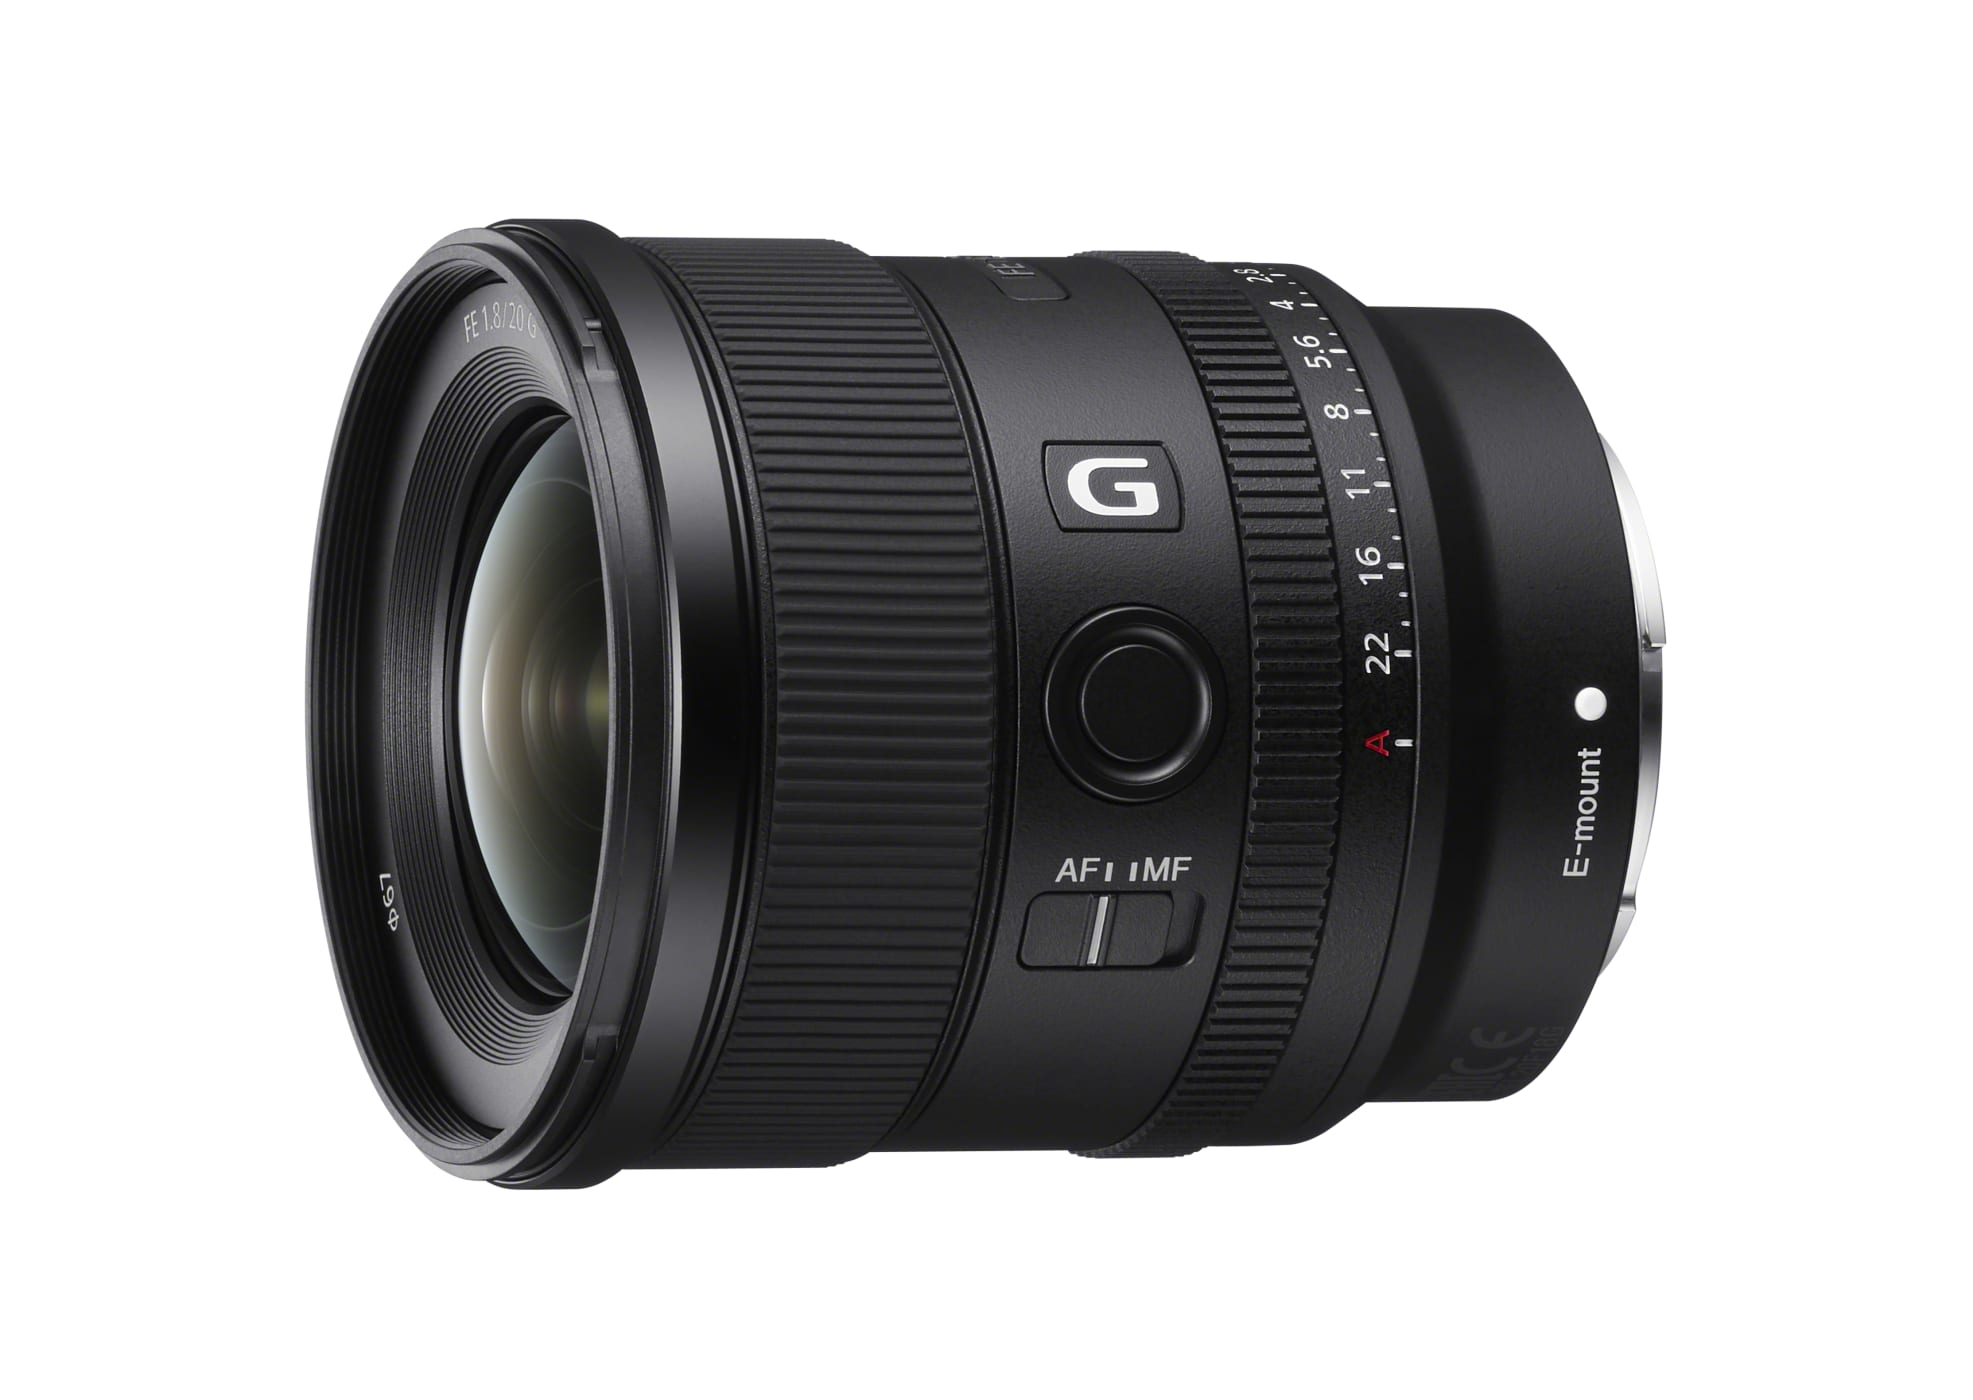 Sony introduces FE 20mm F1.8G full format wide angle for E-Mount